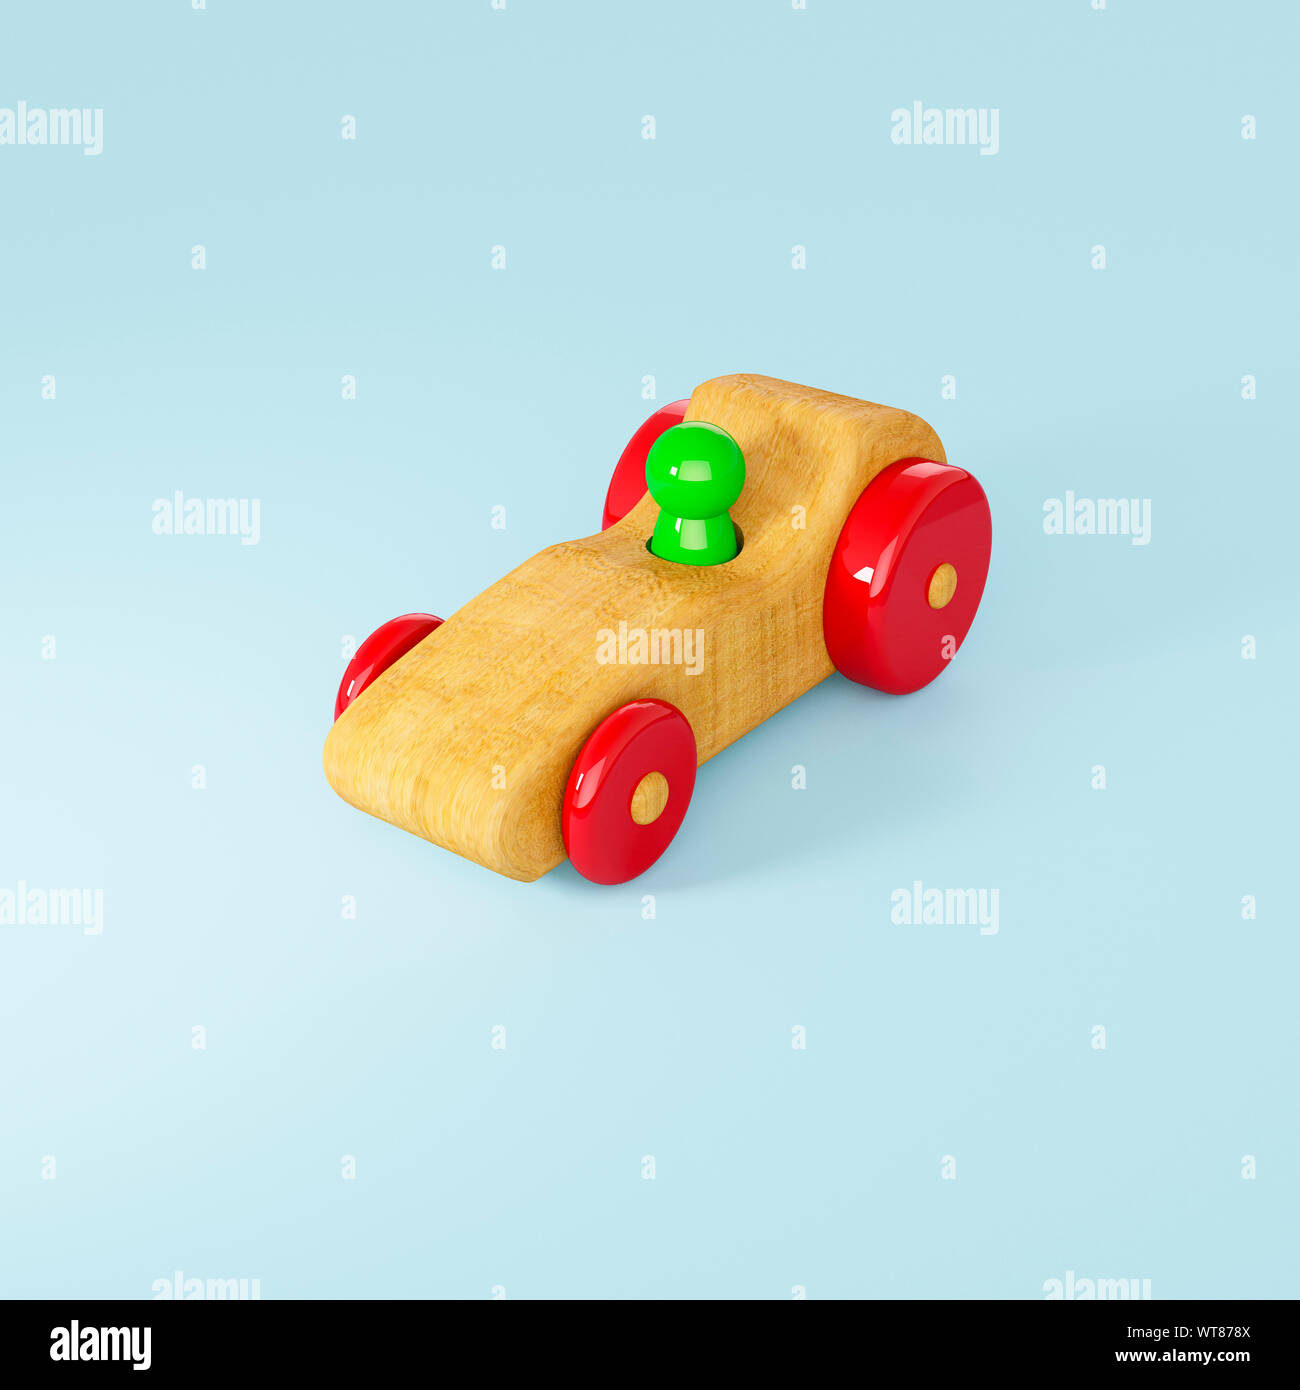 Childrens wooden toys, a wooden racing car and driver toy Stock Photo